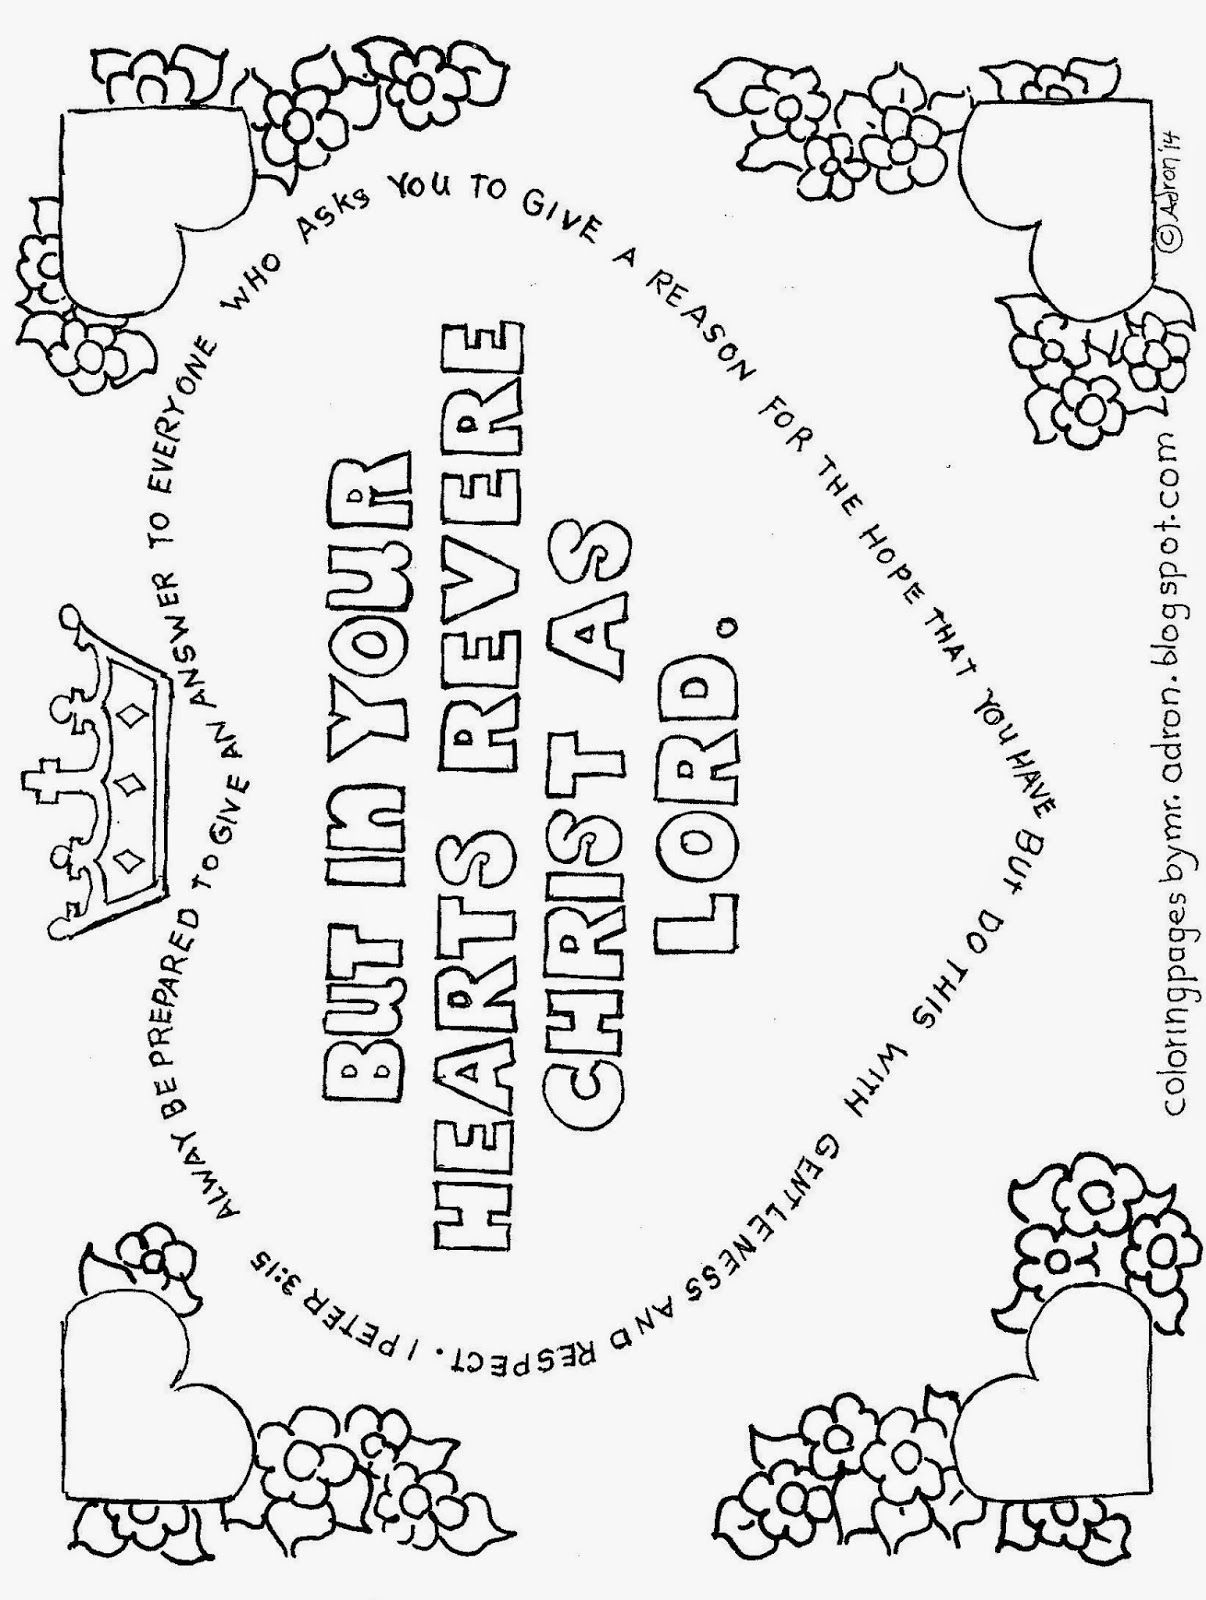 In Your Hearts Revere Christ 1 Peter 3 15 Coloring Page Sunday